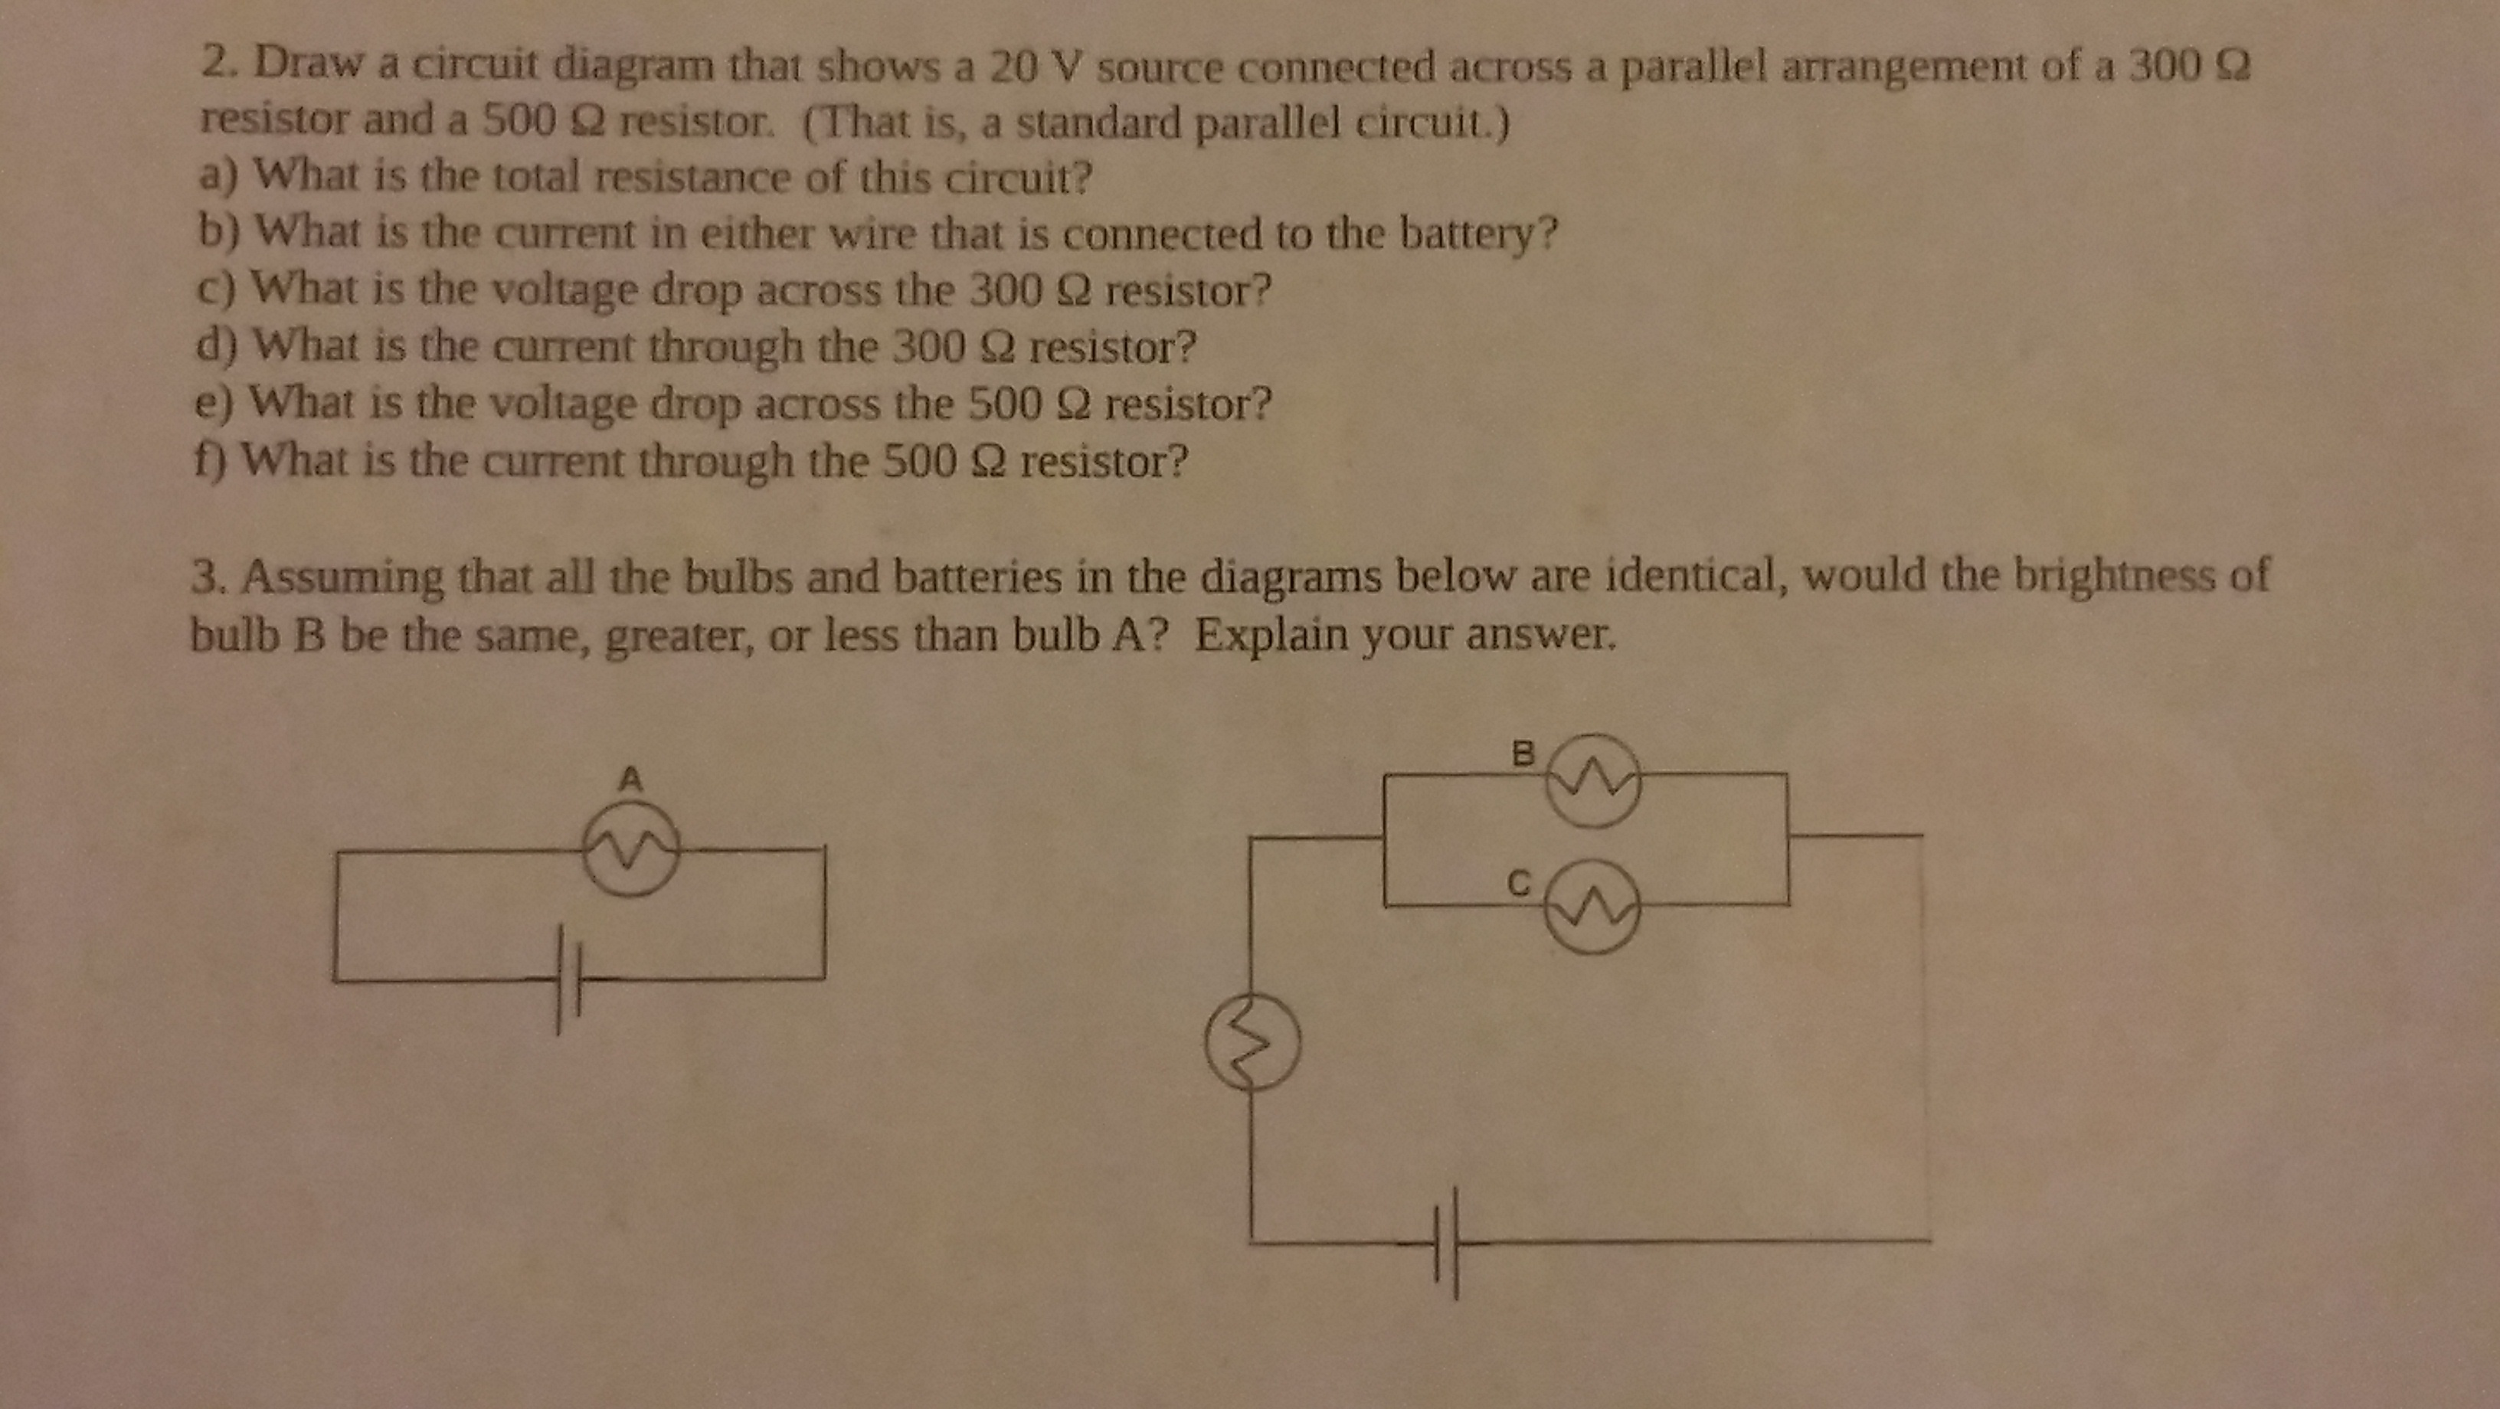 Solved: Draw A Circuit Diagram That Shows A 20 V Source Co ... on how to draw lights, how to draw specs, how to draw block diagrams, drawing electron dot diagrams, how to draw floor plans, how to draw shear diagrams, how to draw home, how to draw index, how to draw blueprints, how to wire a circuit, how to draw shop drawings, how to draw accessories, how to draw air conditioning, how to draw class diagrams, how to draw dimensions, how to draw lightning, electrical circuit diagrams, how to draw brakes, how to draw links,